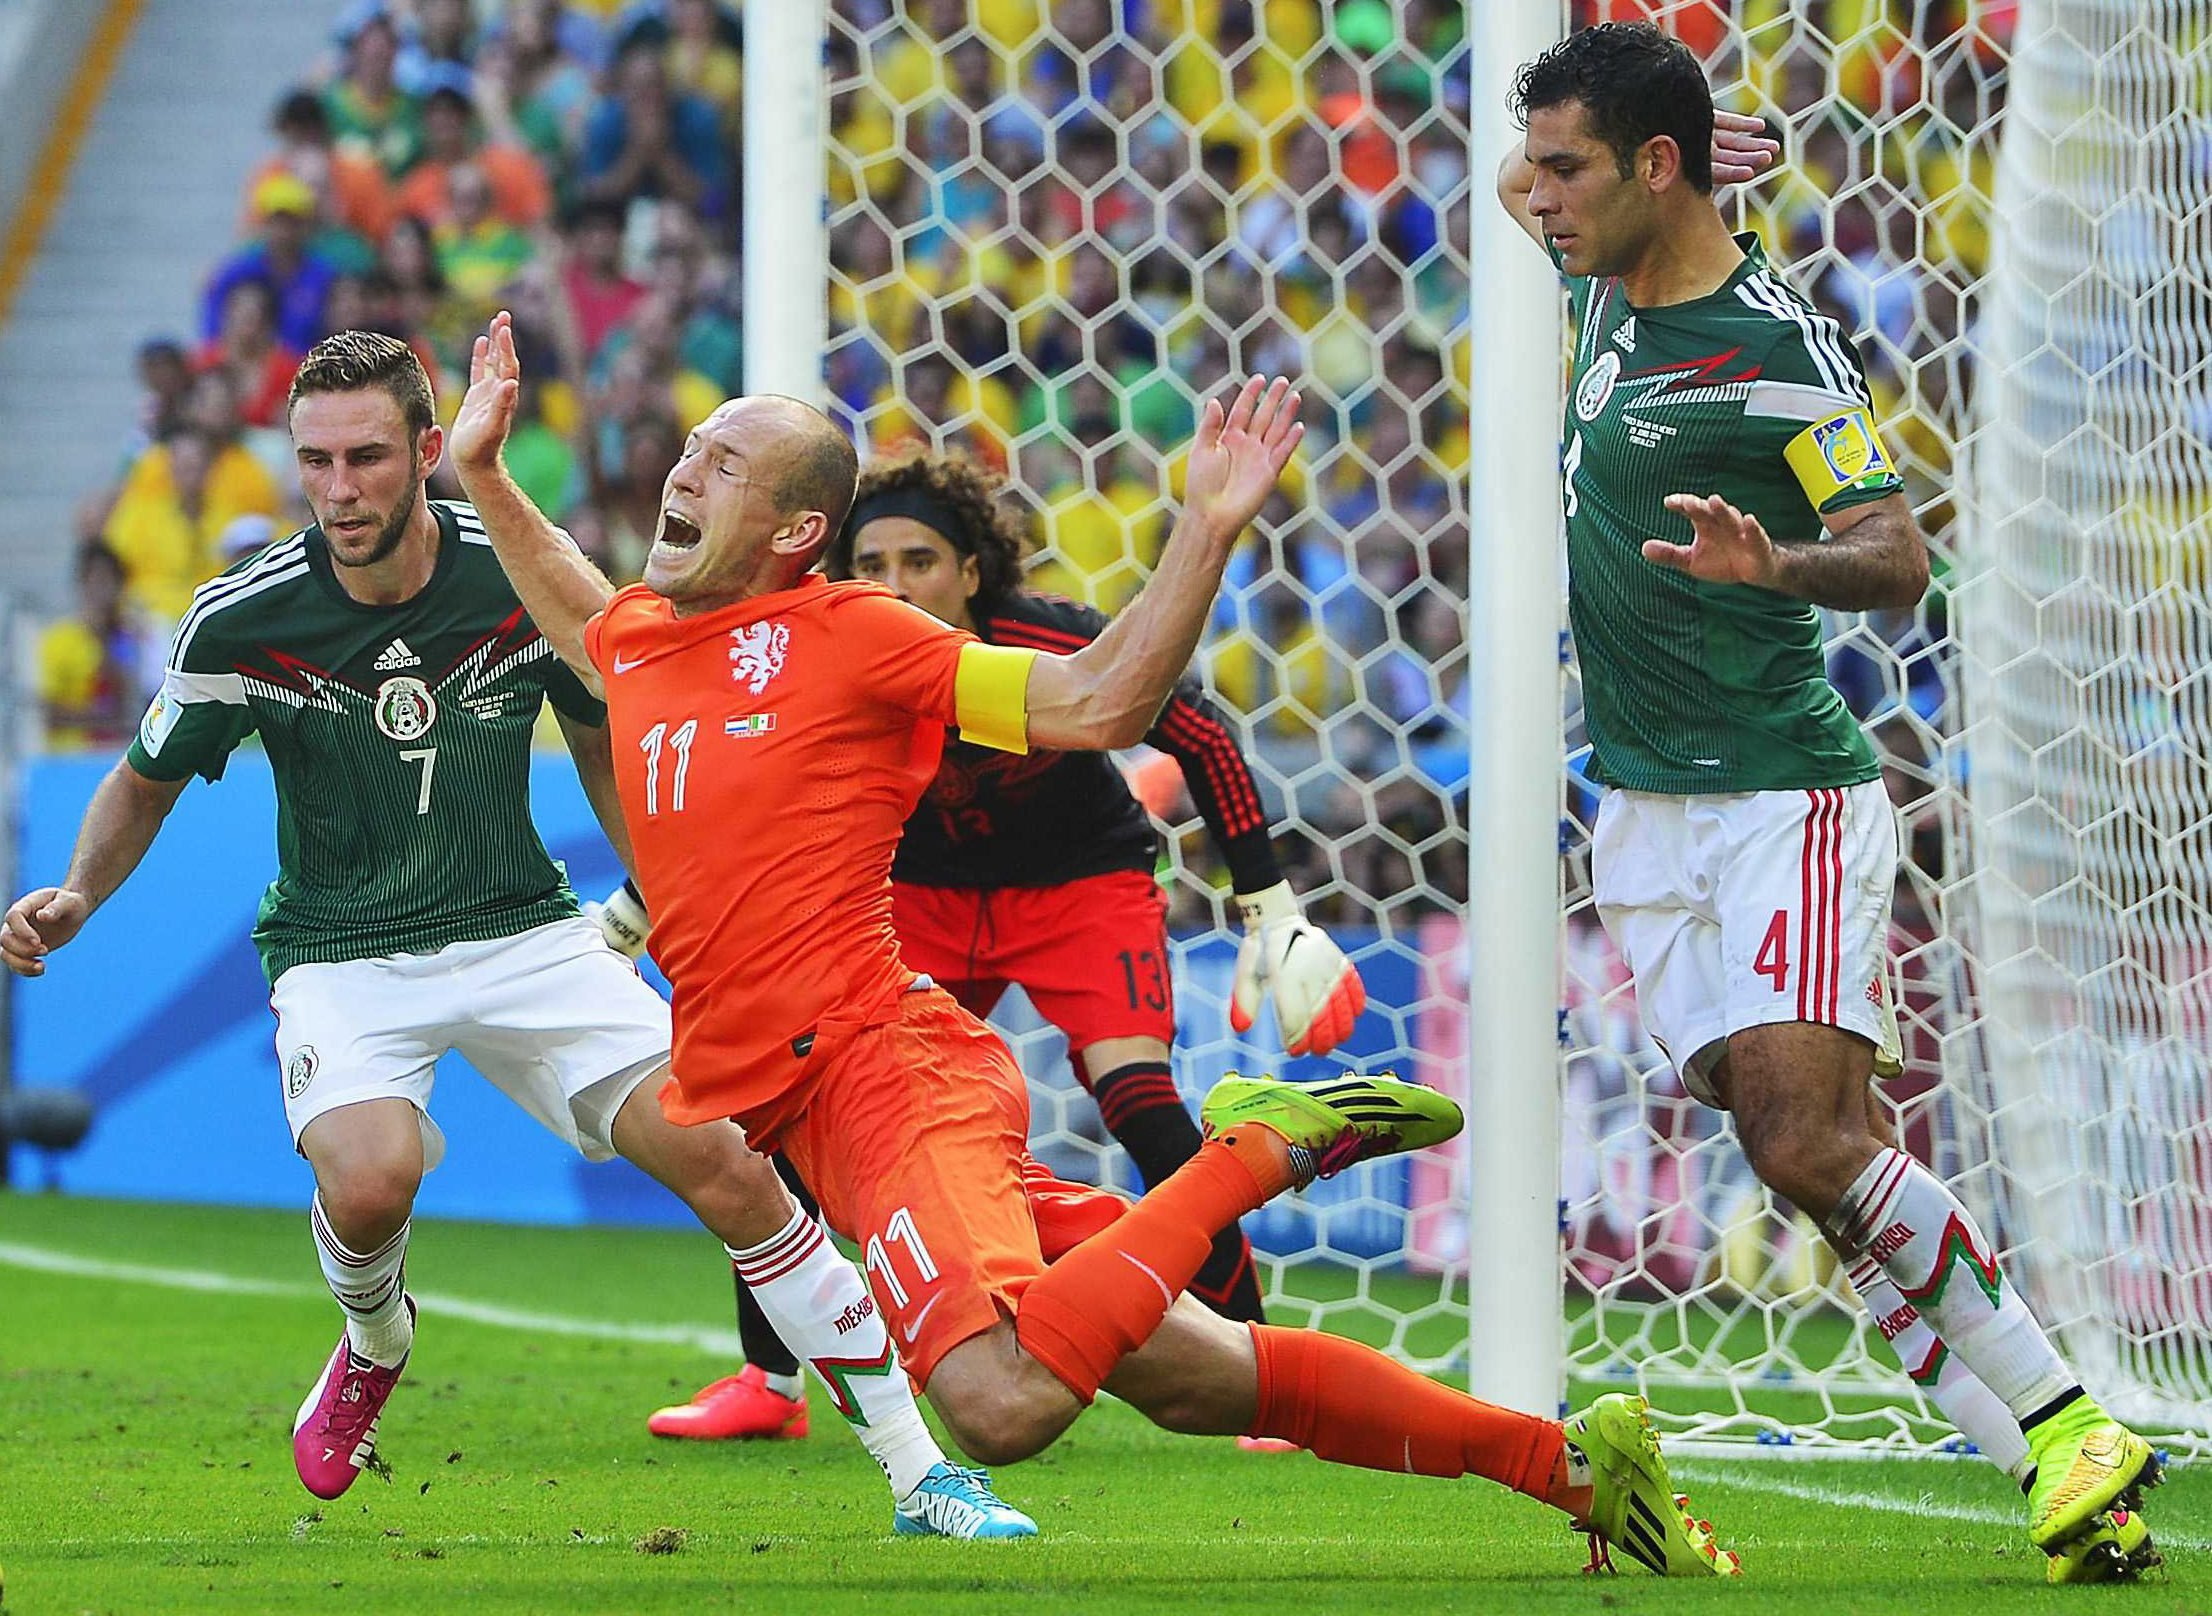 Rafael Marquez gets called for a foul against Arjen Robben of the Netherlands in the box during the match between the Netherlands and Mexico at the Estadio Castelao in Fortaleza, Brazil on June 29, 2014.